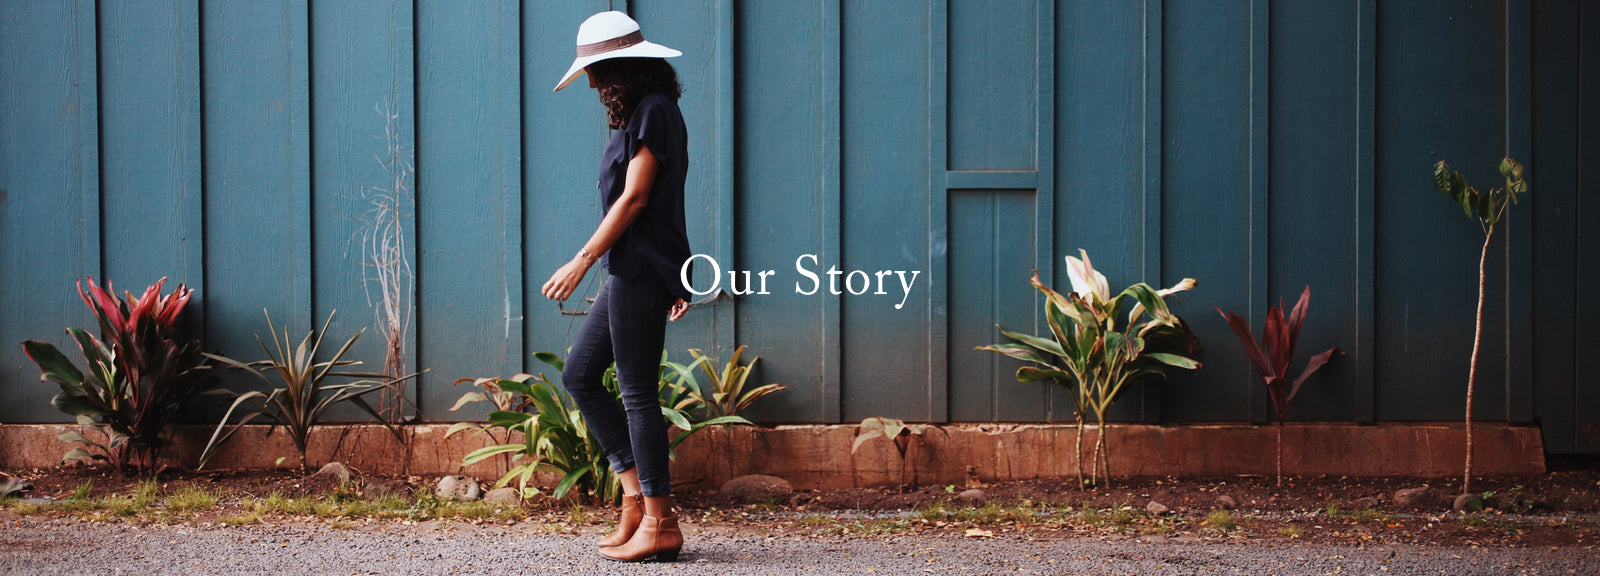 Kalaki Riot About Us - Our Story